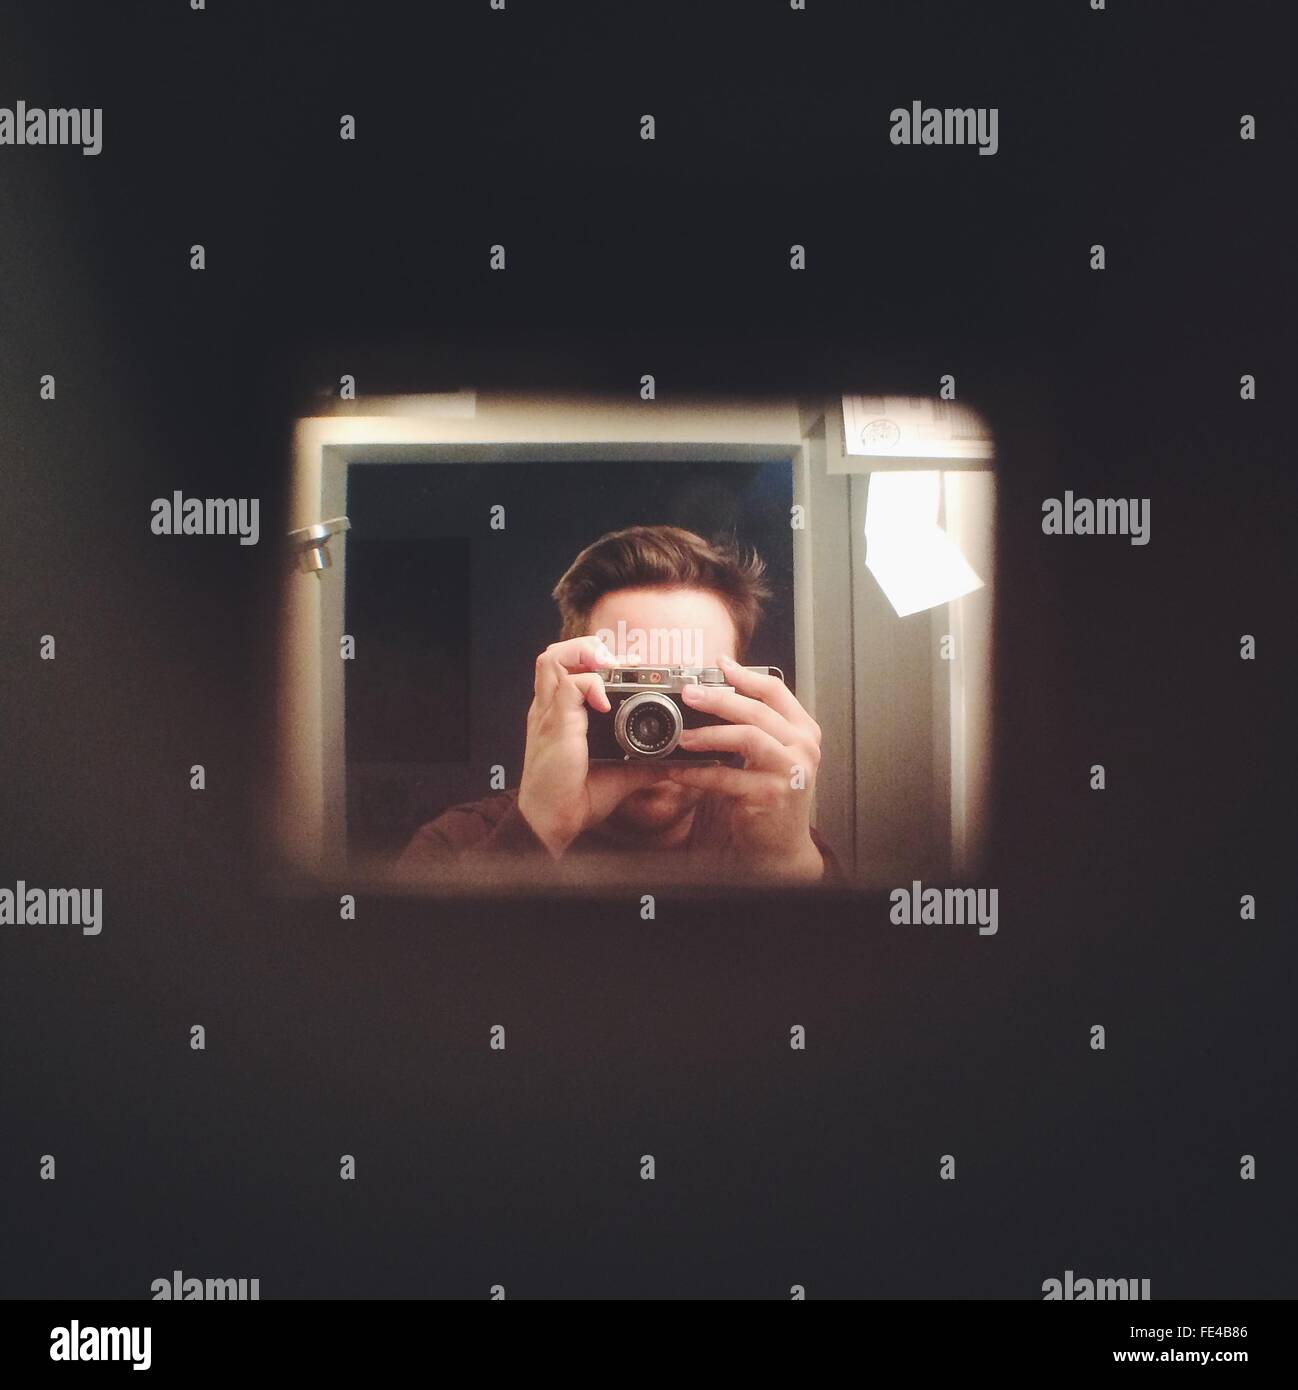 Reflection Of Man In Mirror While Photographing - Stock Image